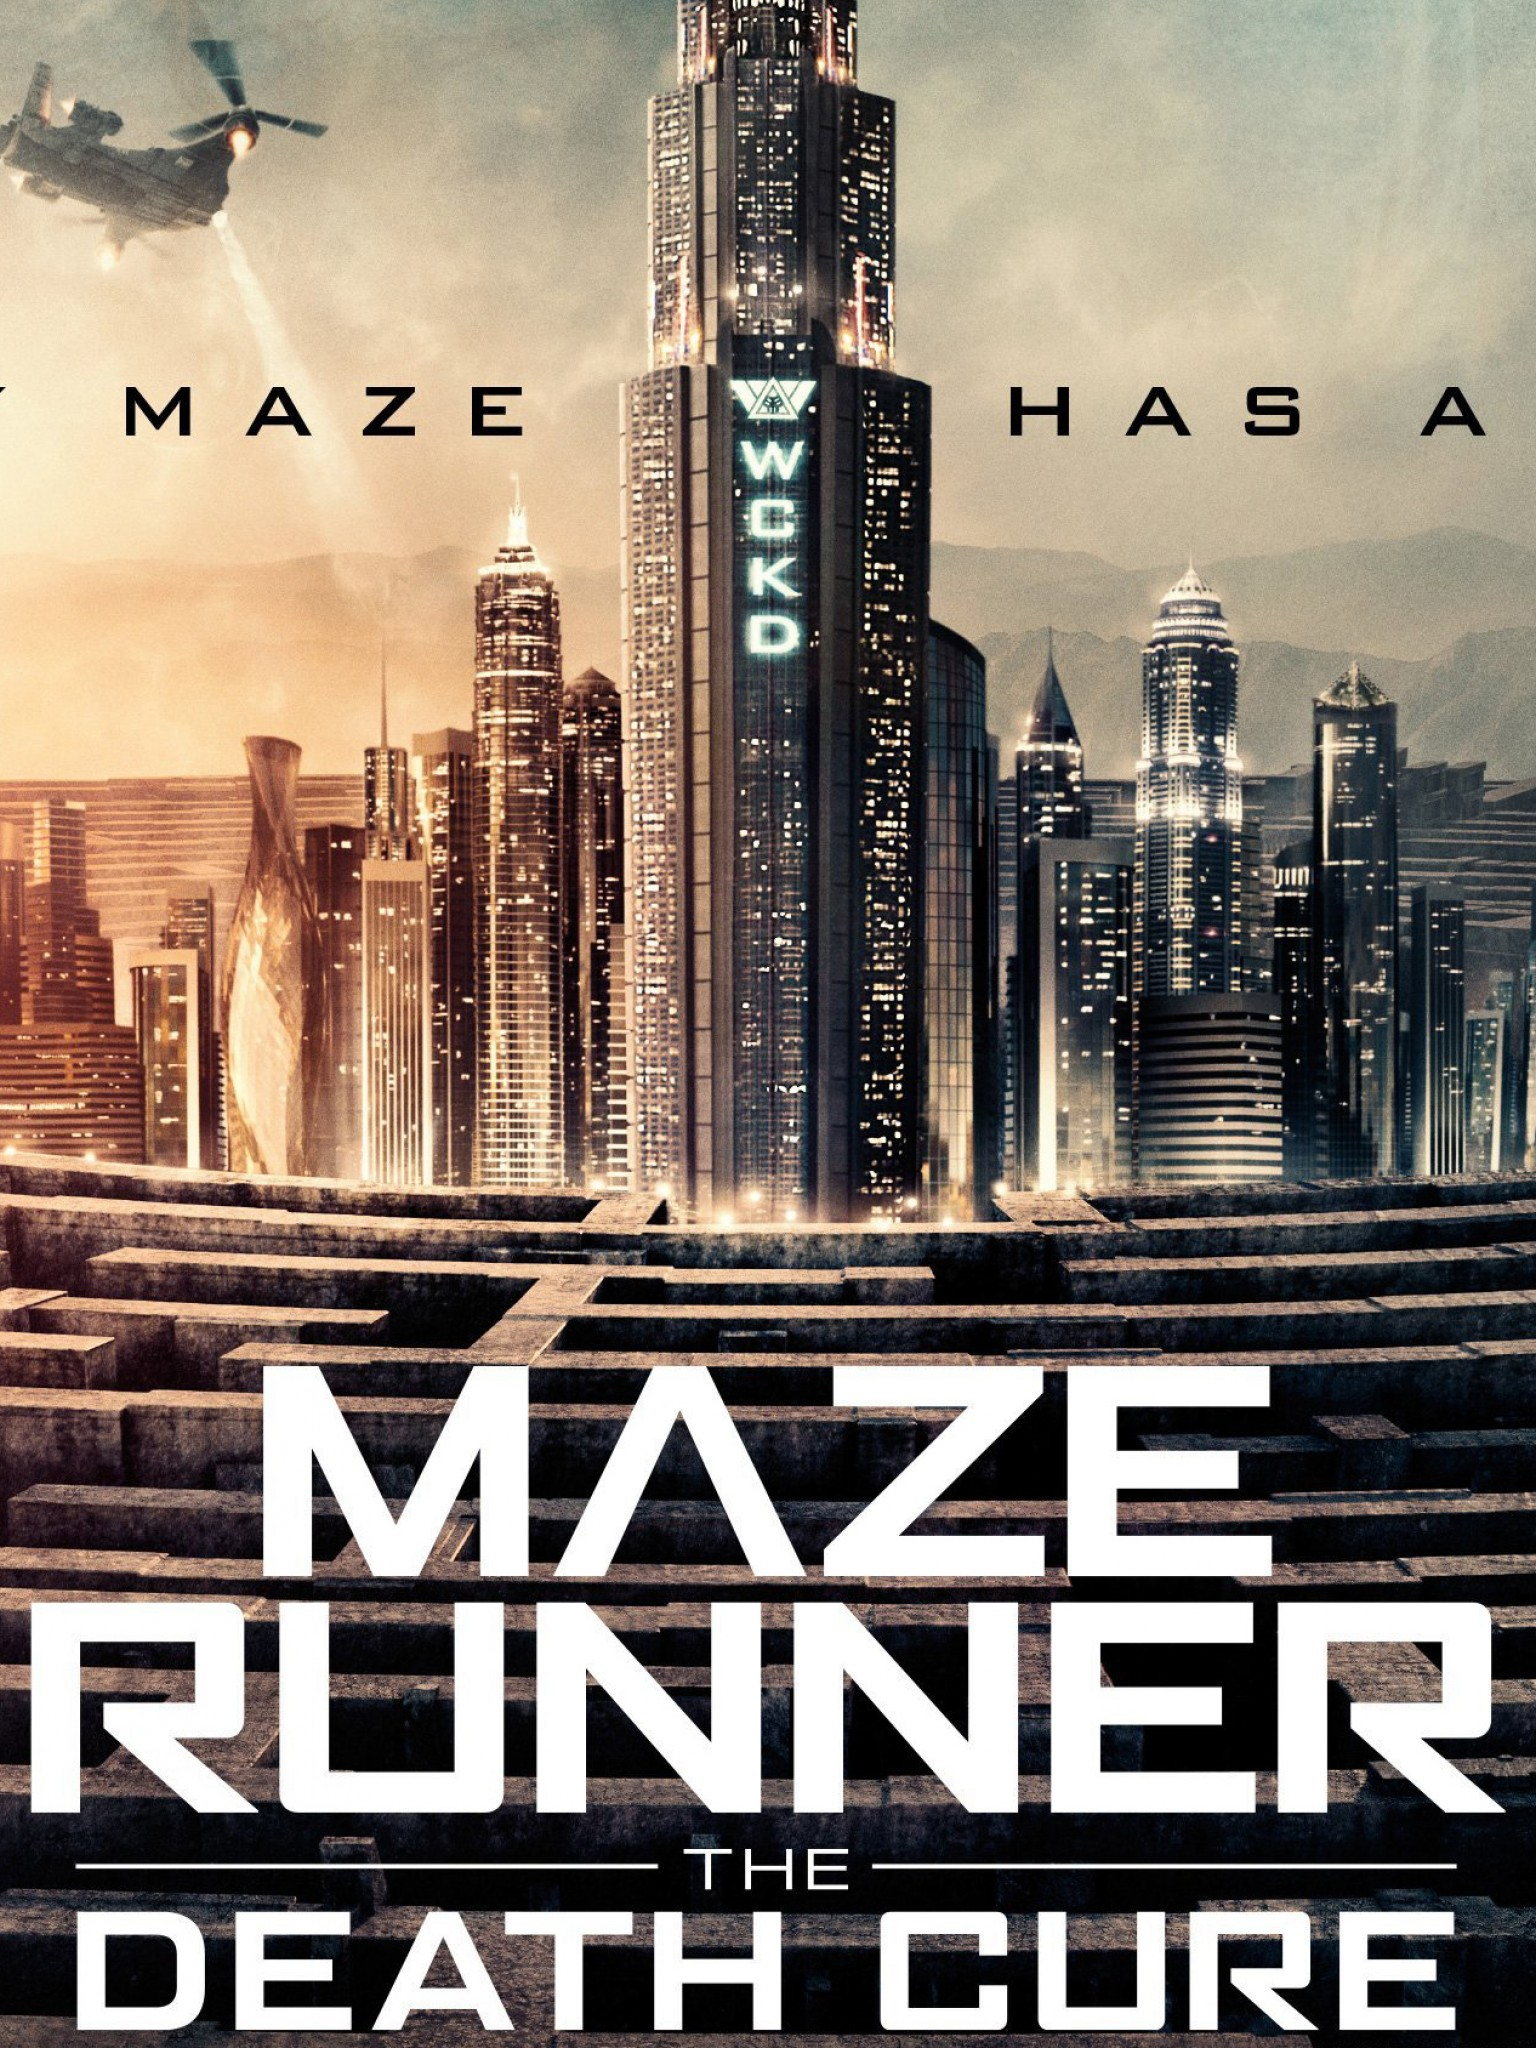 Download The Maze Runner Full Hd Wallpaper for Desktop and Mobiles